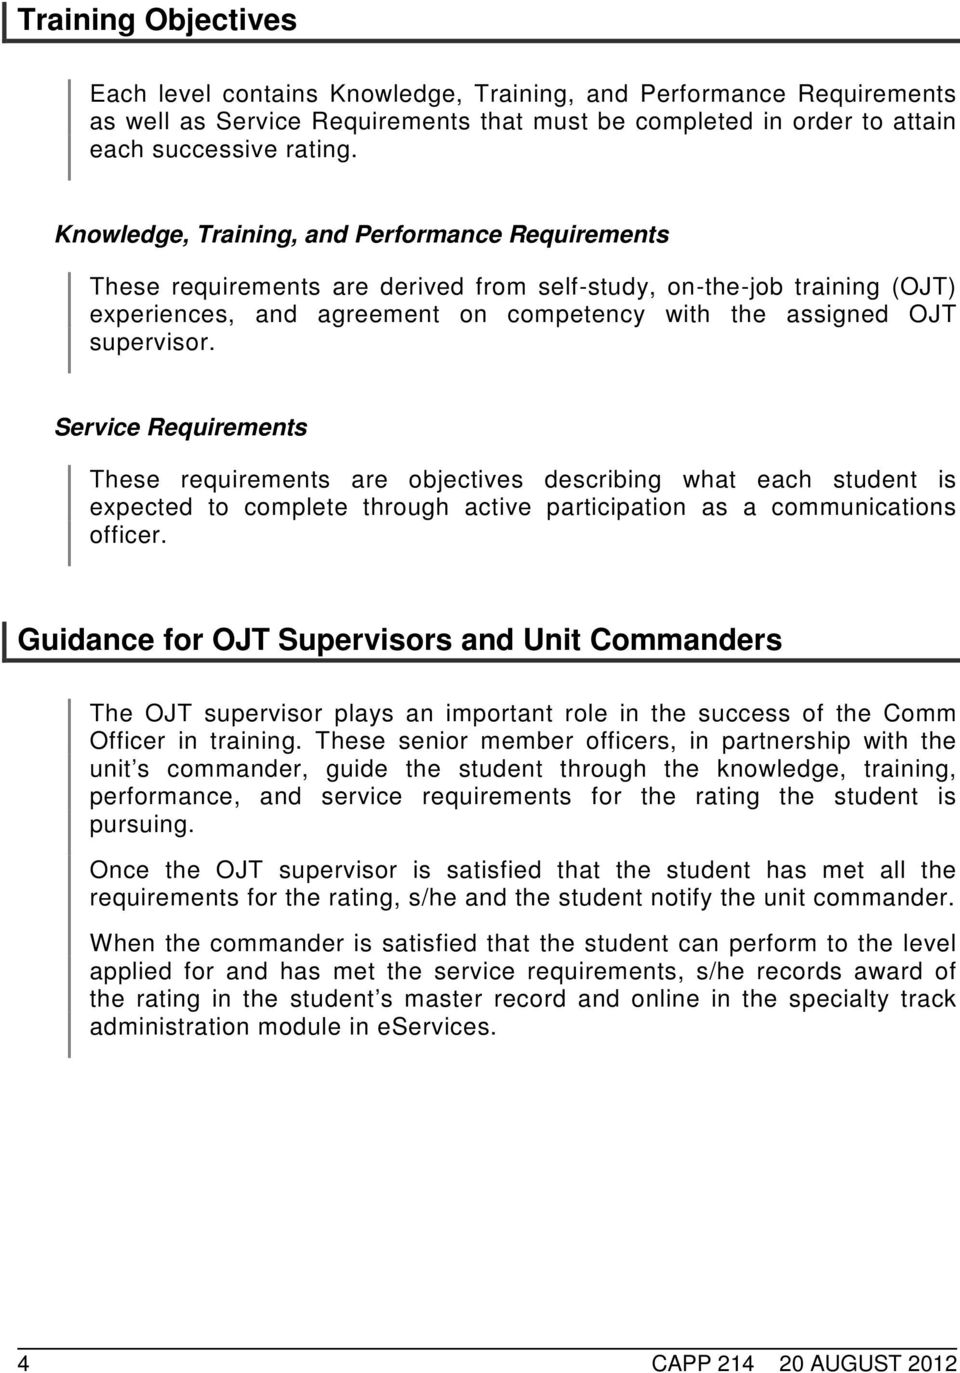 Service Requirements These requirements are objectives describing what each student is expected to complete through active participation as a communications officer.